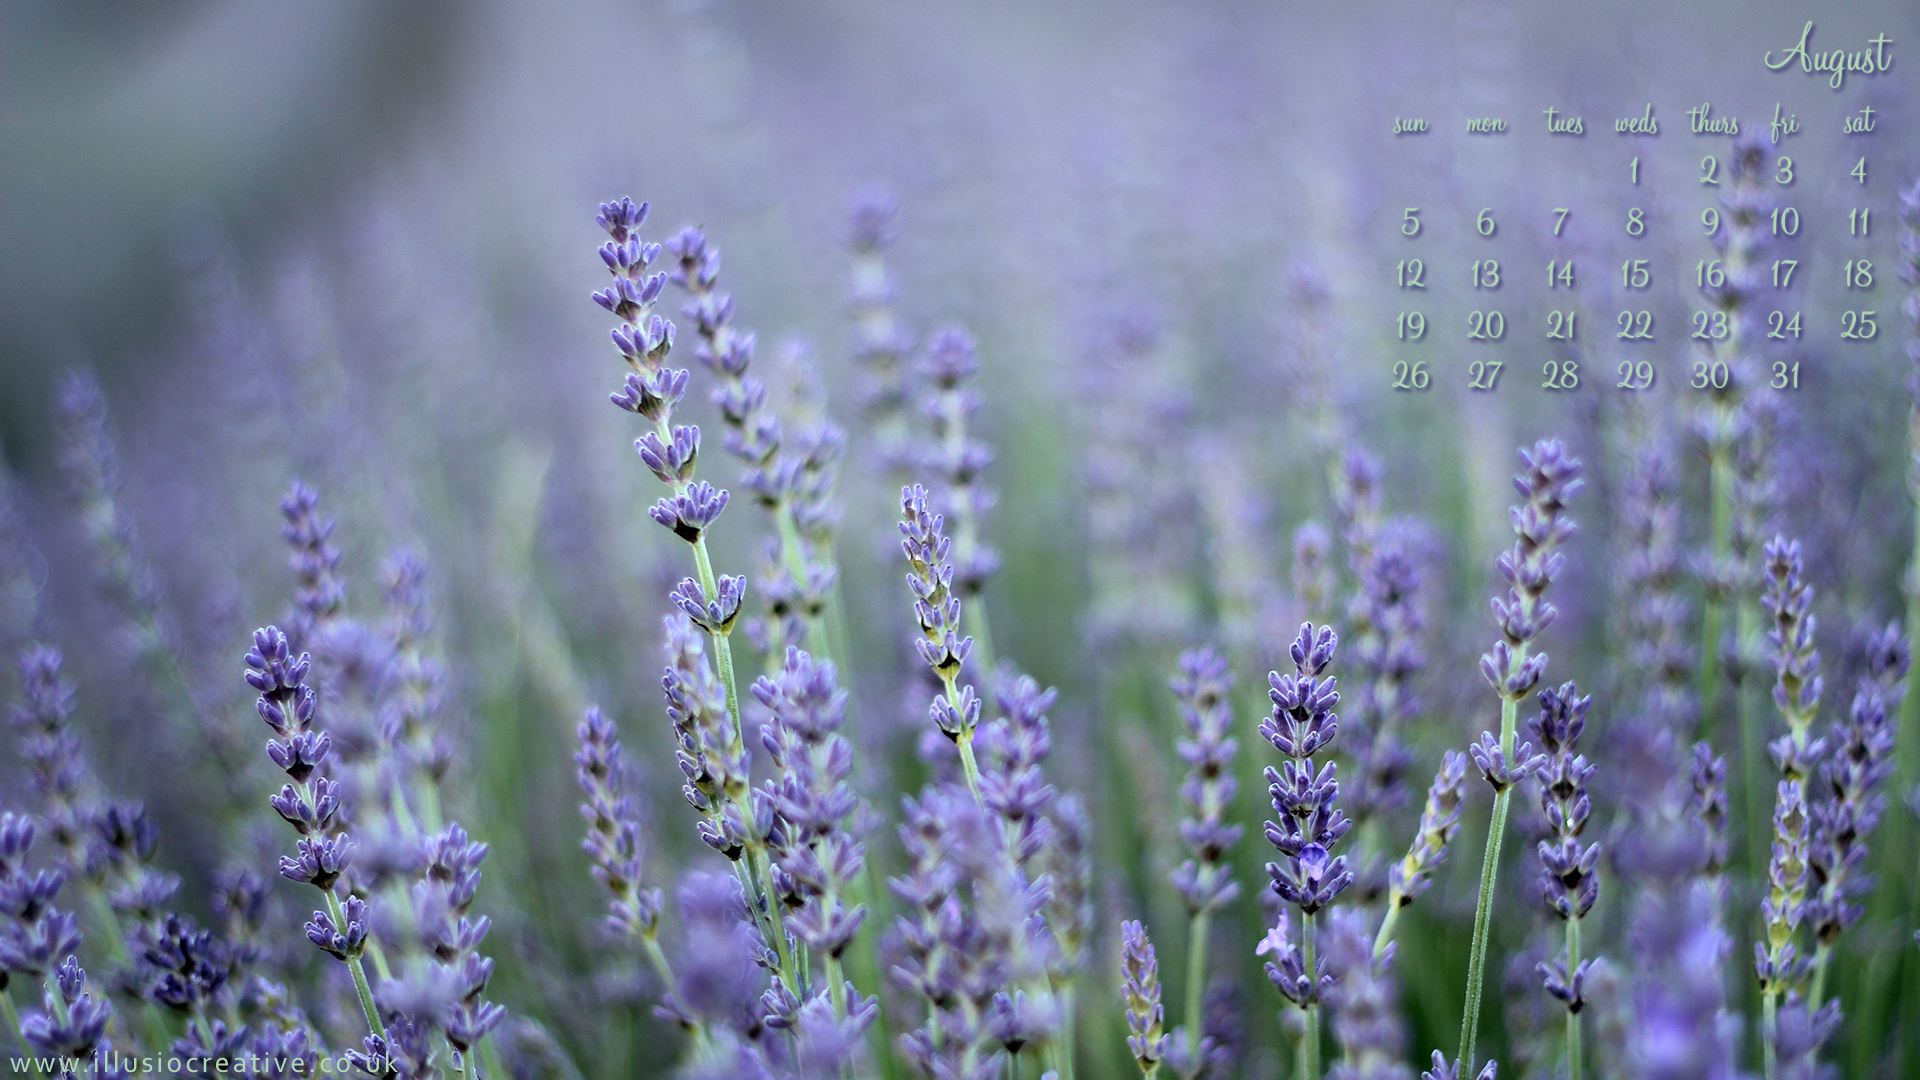 August 2012 - Lordington Lavender - 1920 x1080